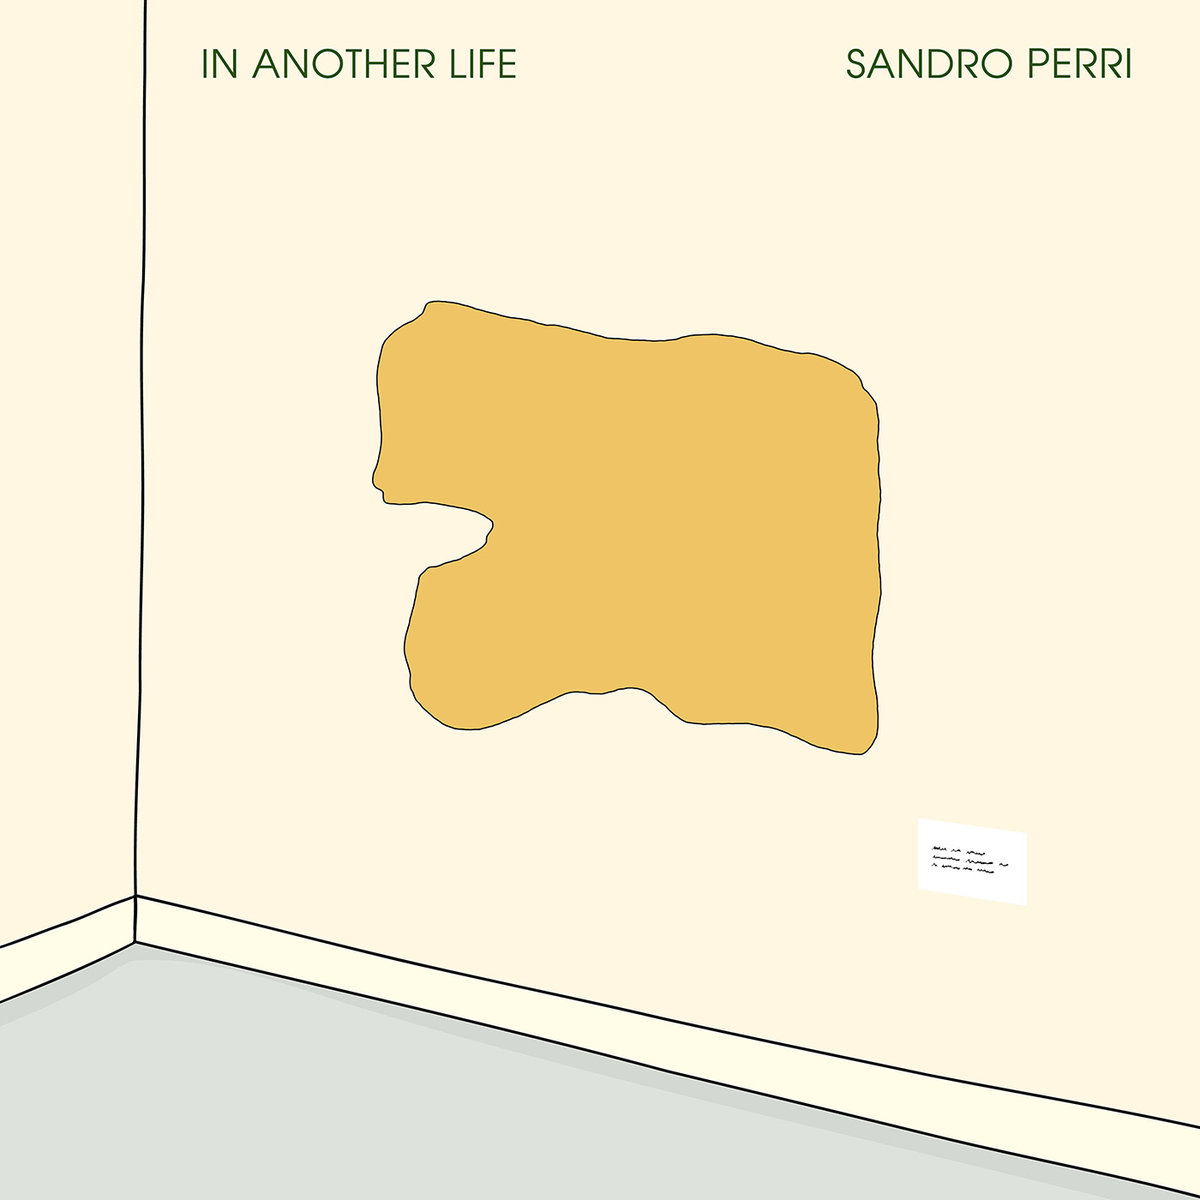 Sandro Perri - In Another Life  Artwork by theblackrhino